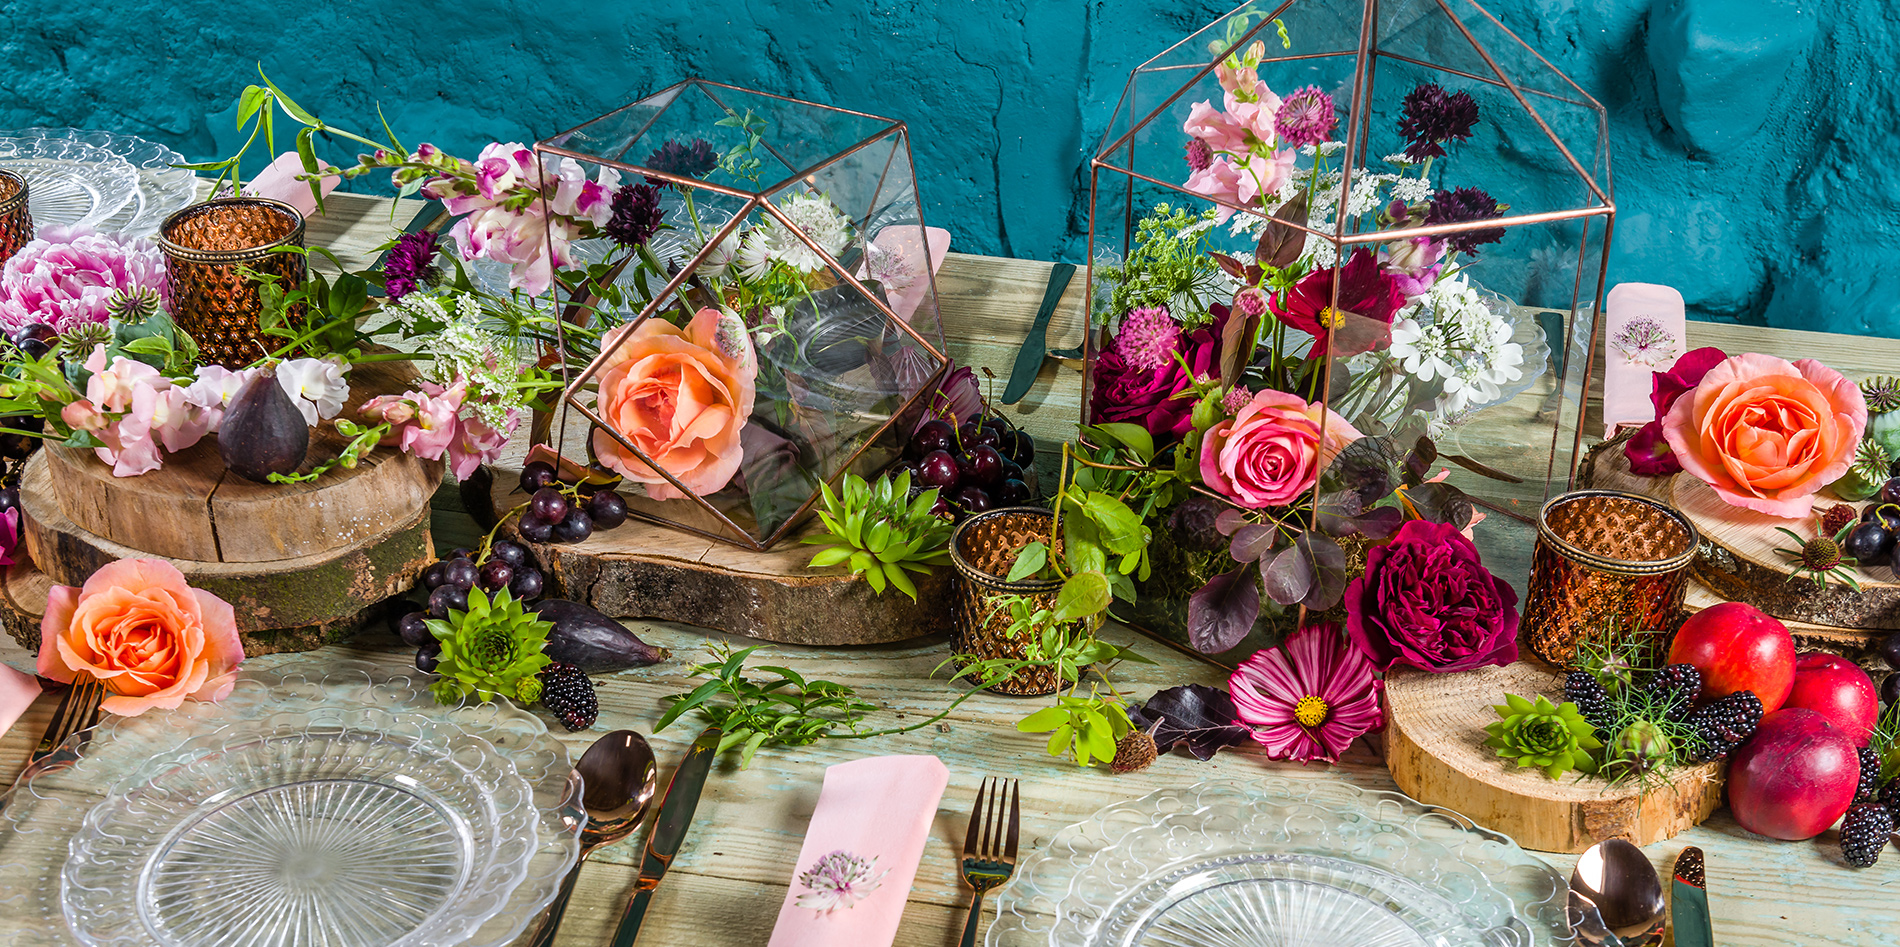 Table-setting-for-Get-Knotted-photo-shoot-for-how-to-make-series-lindsey-hunter